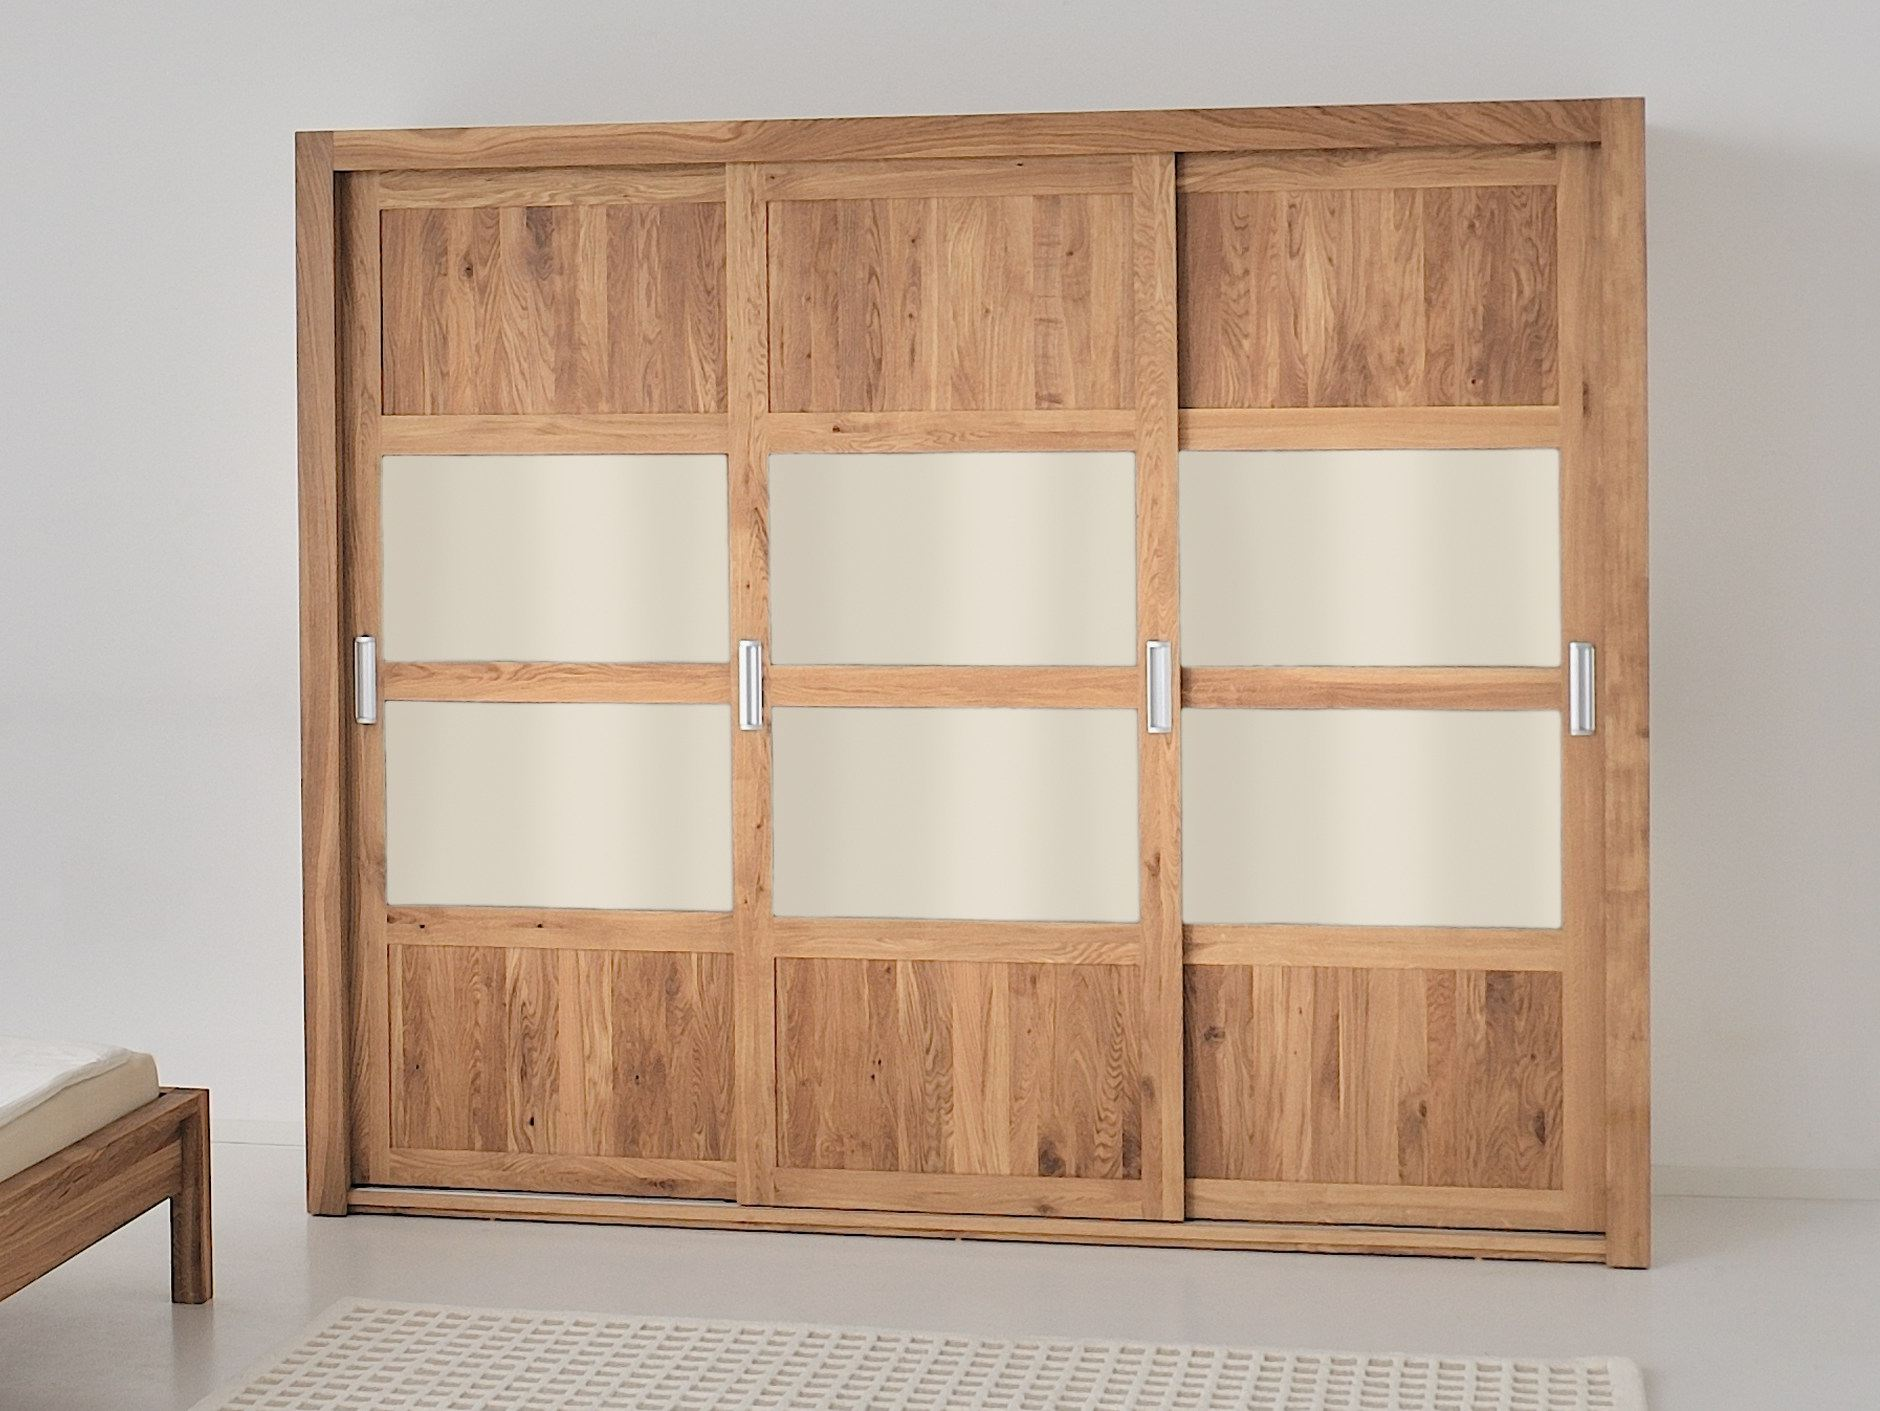 armoire en bois massif portes coulissantes note by vitamin design design gg designart. Black Bedroom Furniture Sets. Home Design Ideas